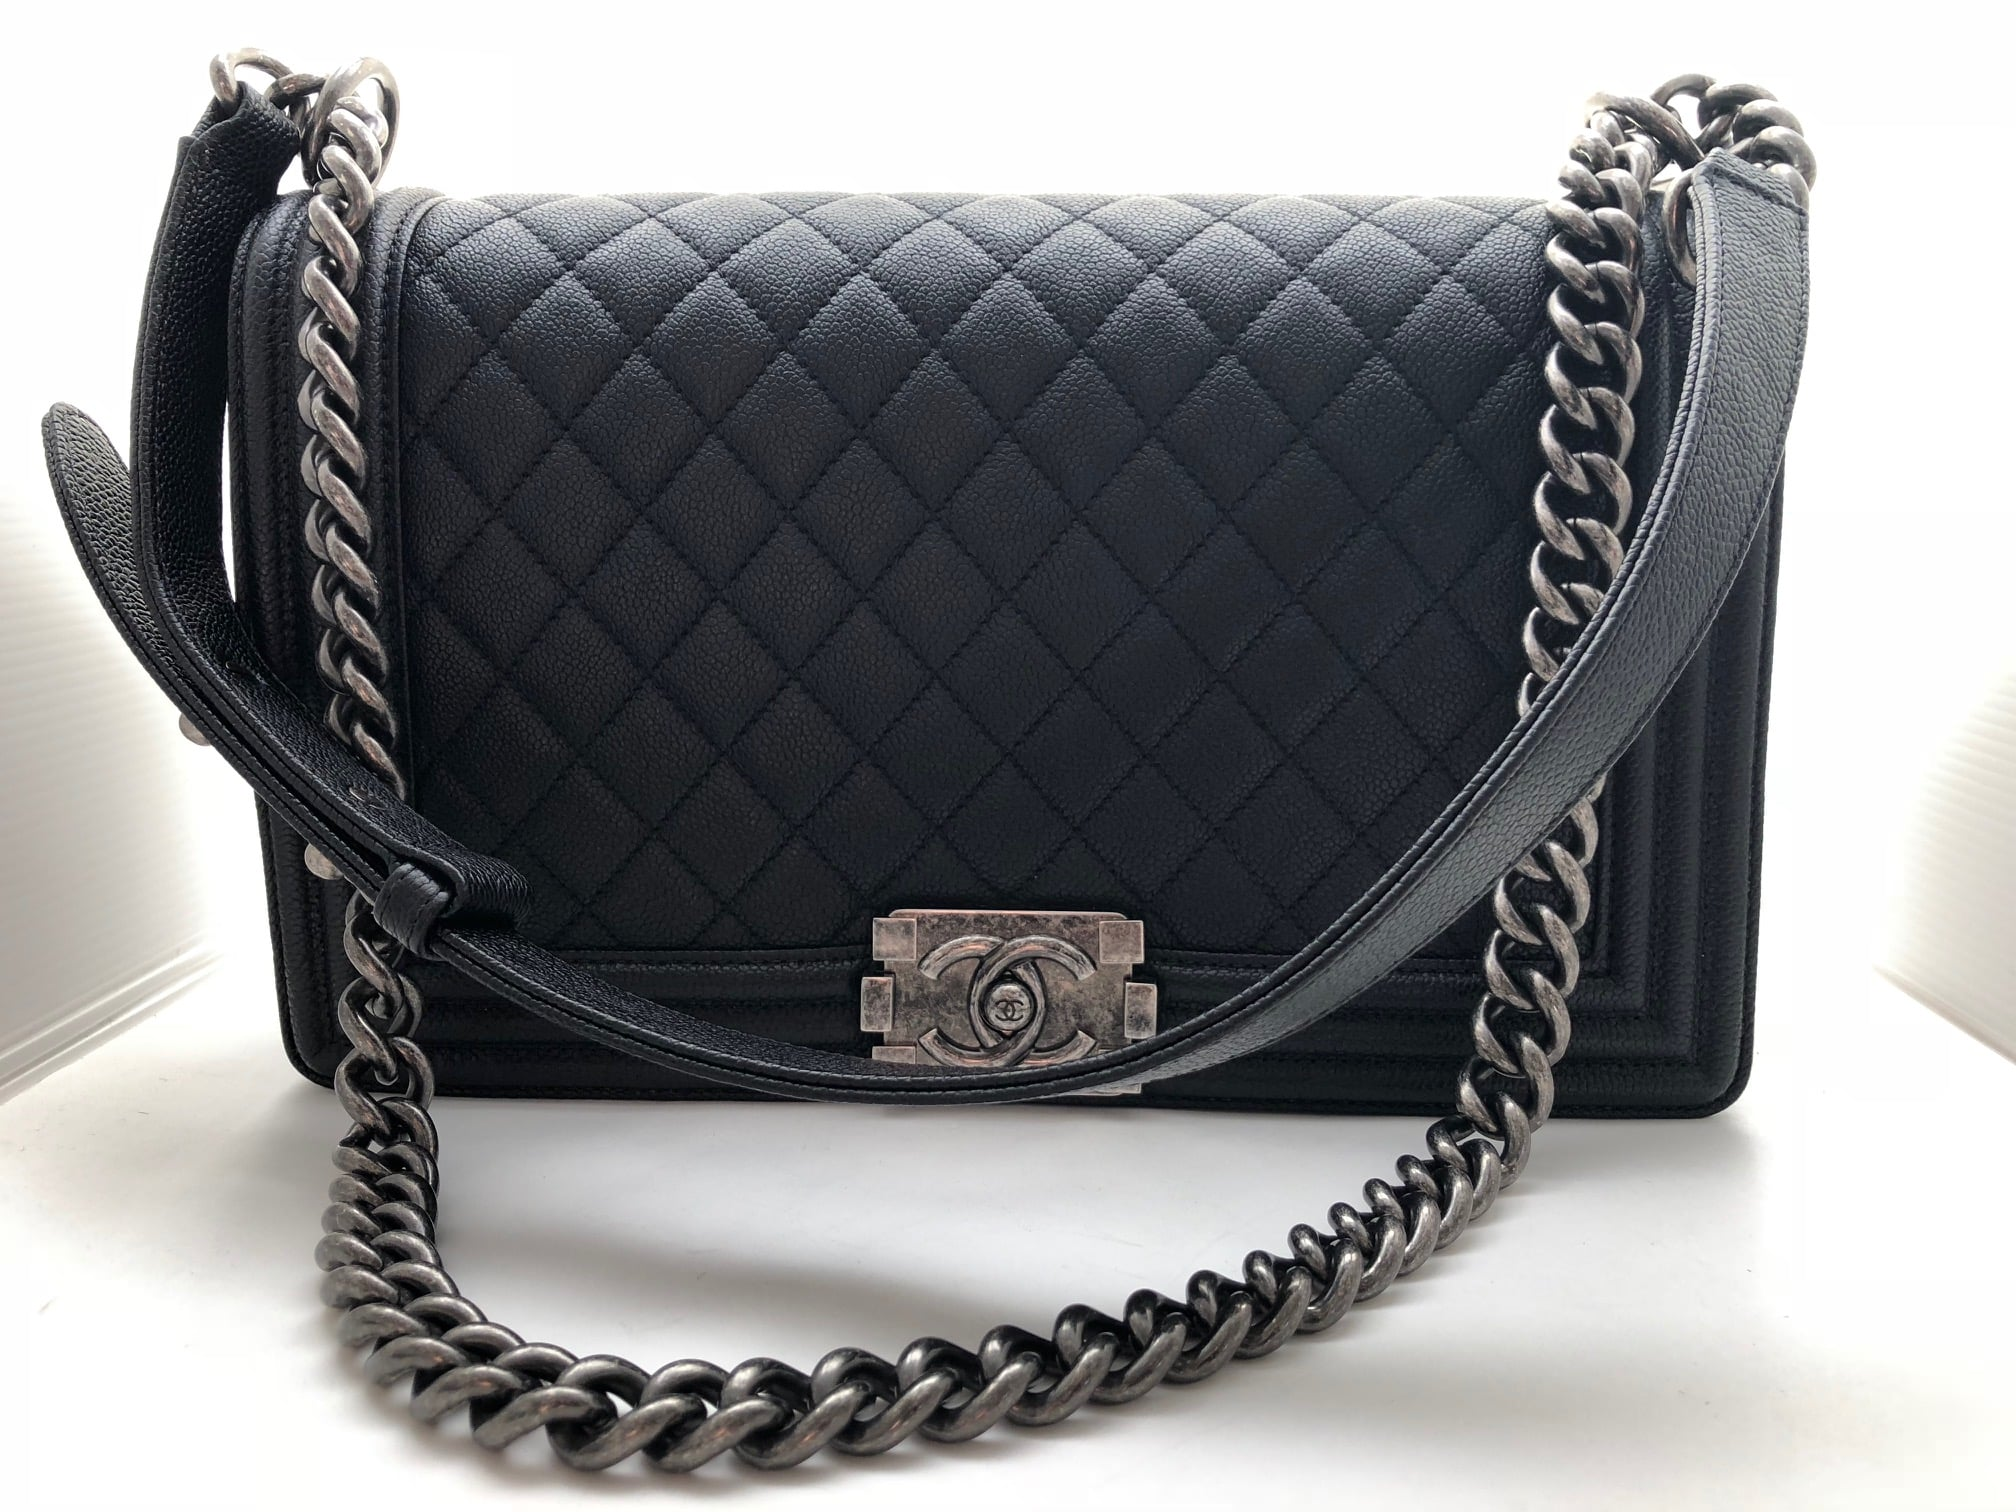 CHANEL Boy Bag - Chelsea Vintage Couture c608a80be1f8b